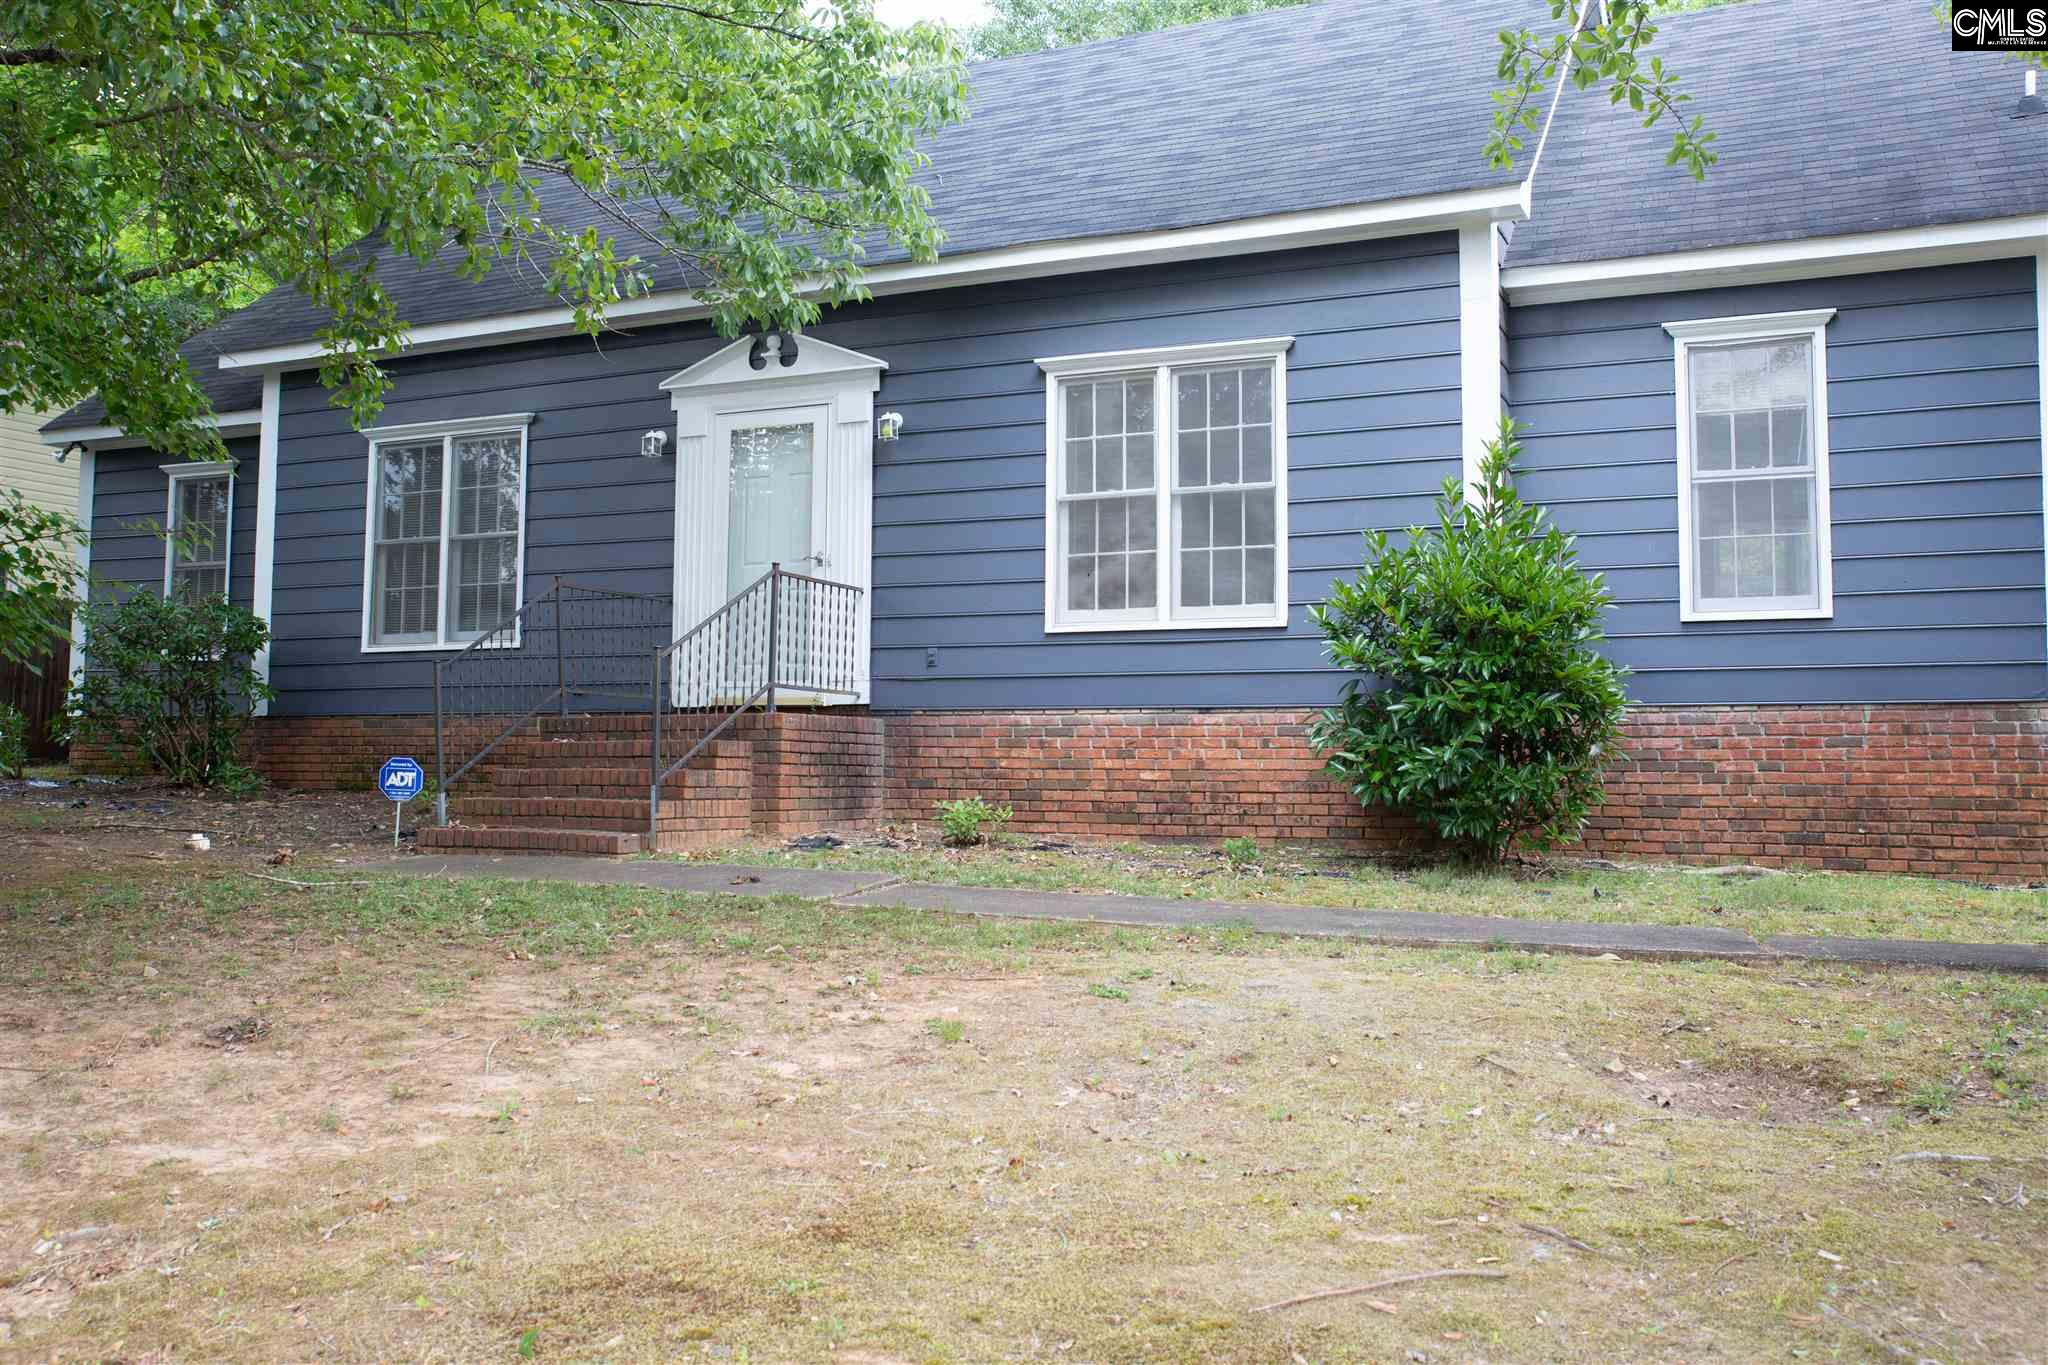 300 Gales River Irmo, SC 29063